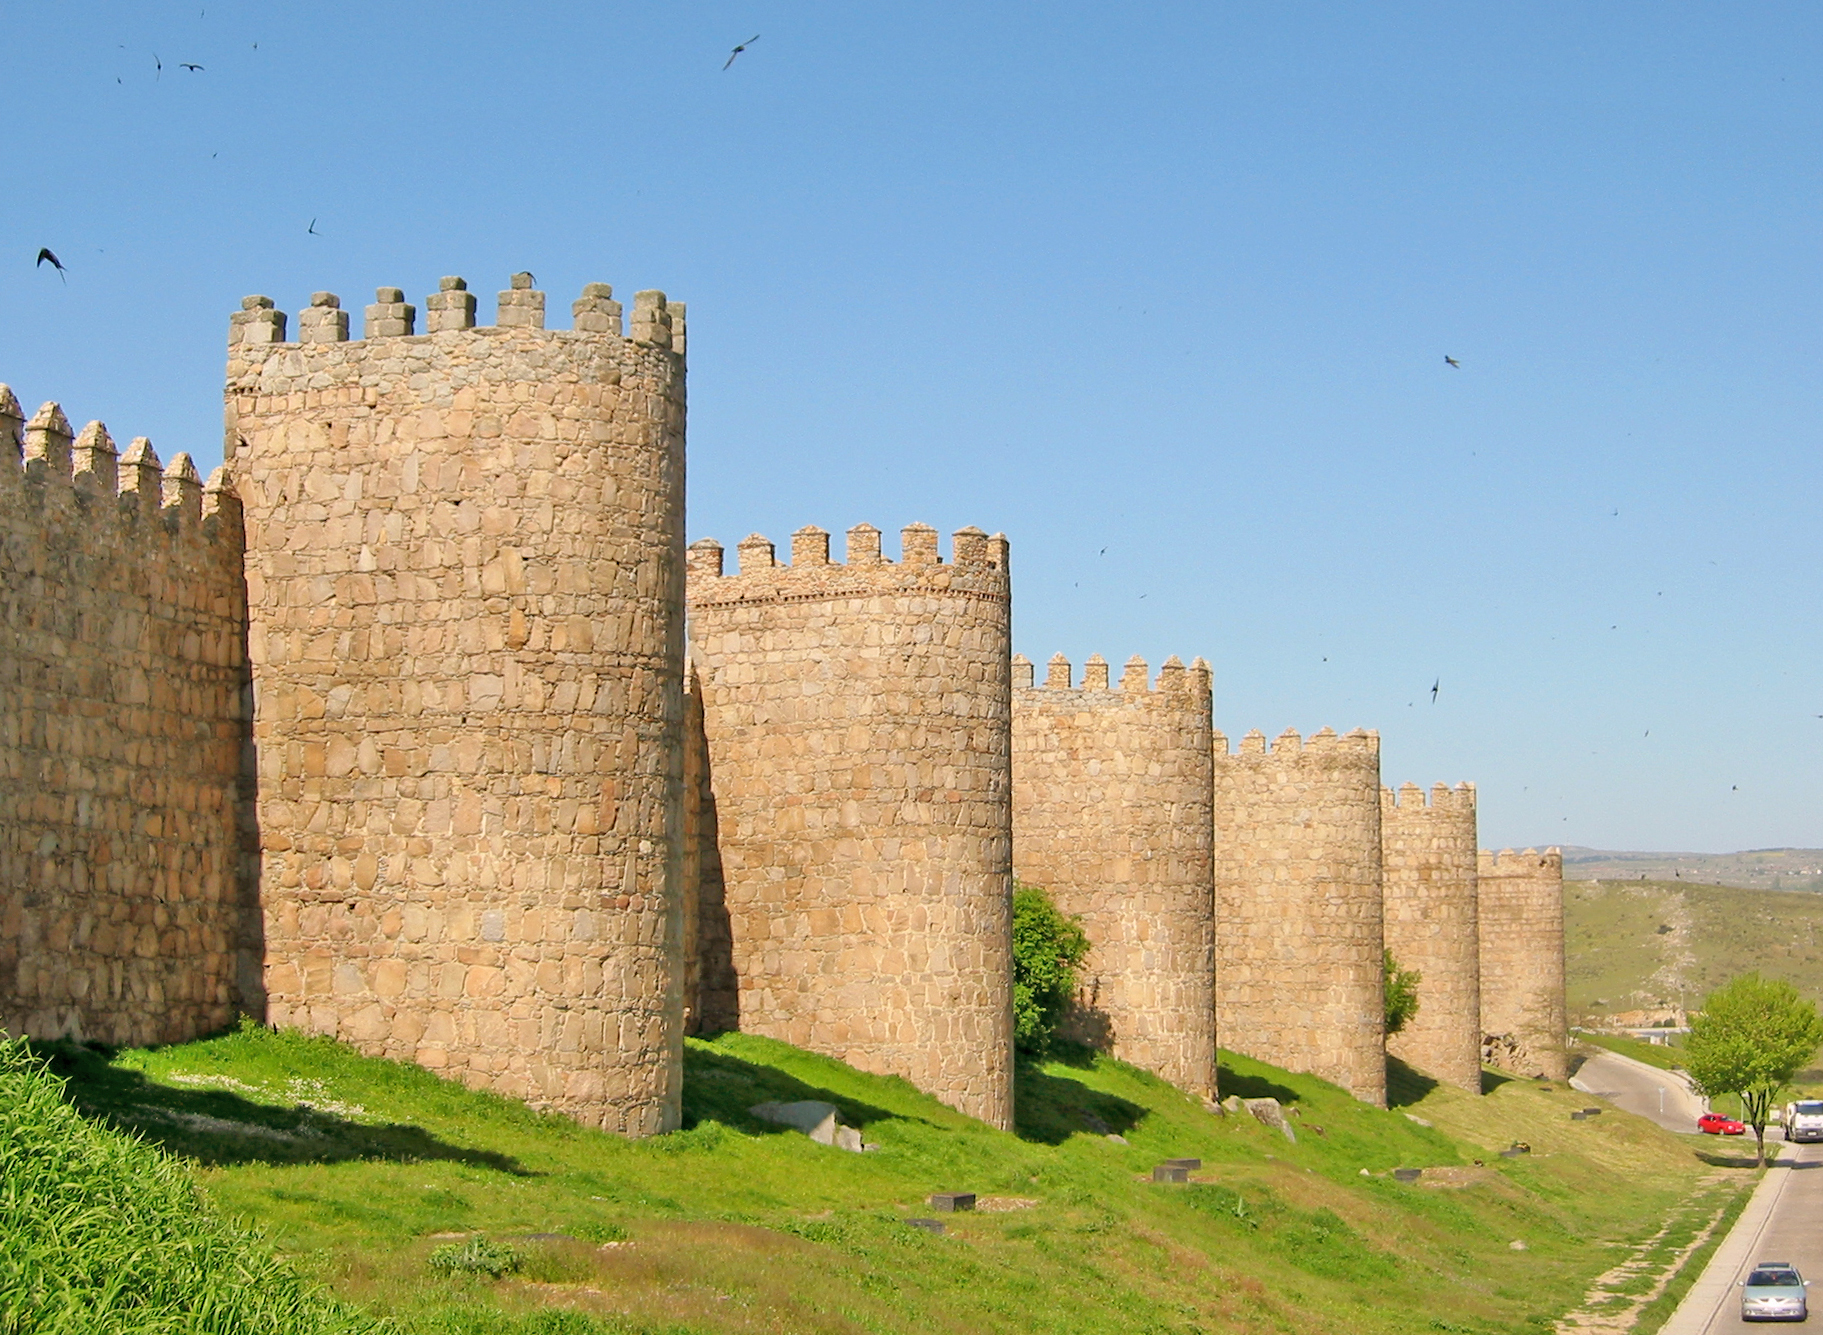 File:Muralla de Ávila 01.jpg - Wikipedia, the free encyclopedia